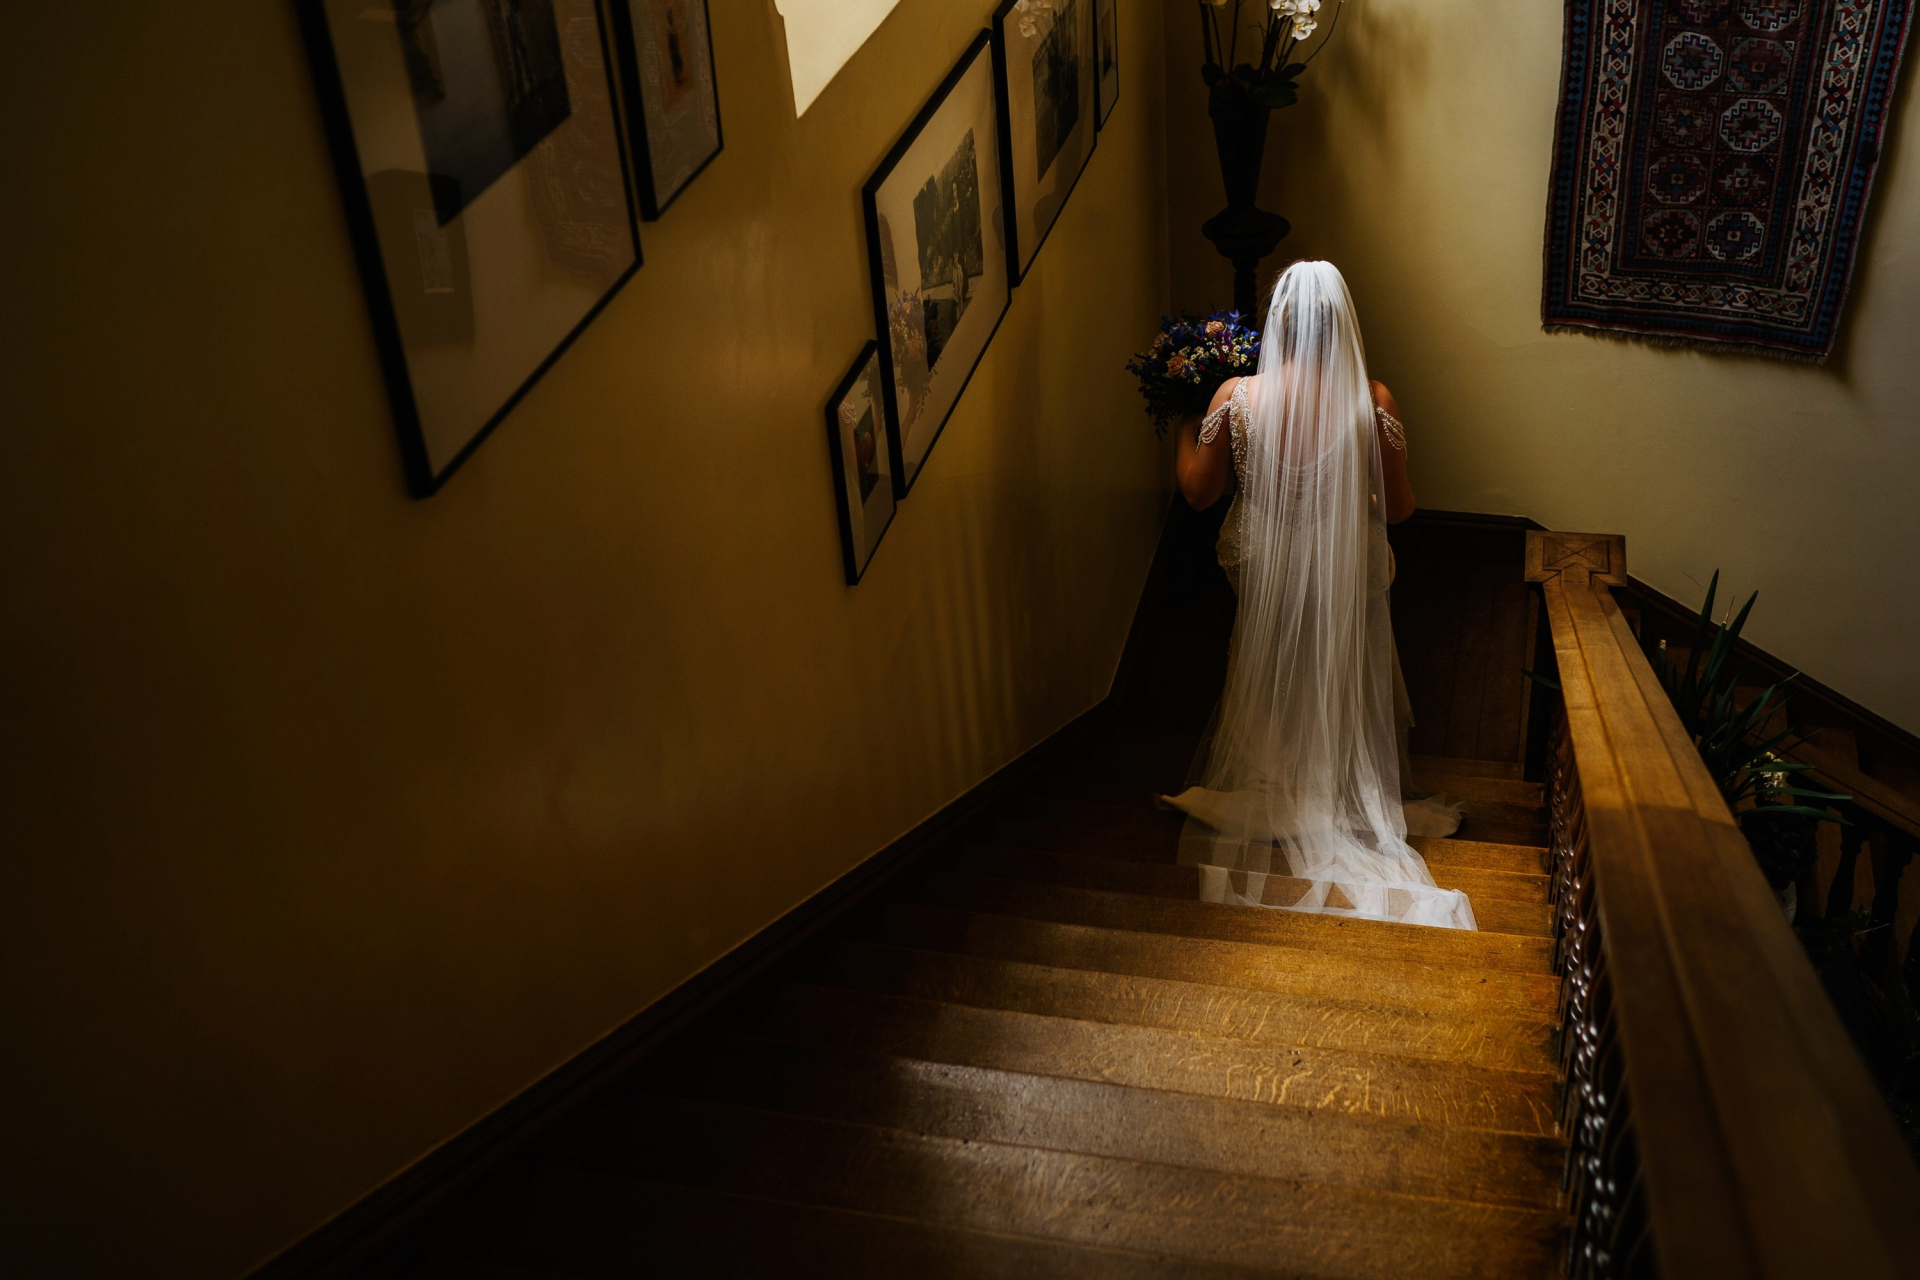 Norfolk Wedding Venue Photography at Gunthorpe Hall | The light from the window catches the bride as she walks down the stairs